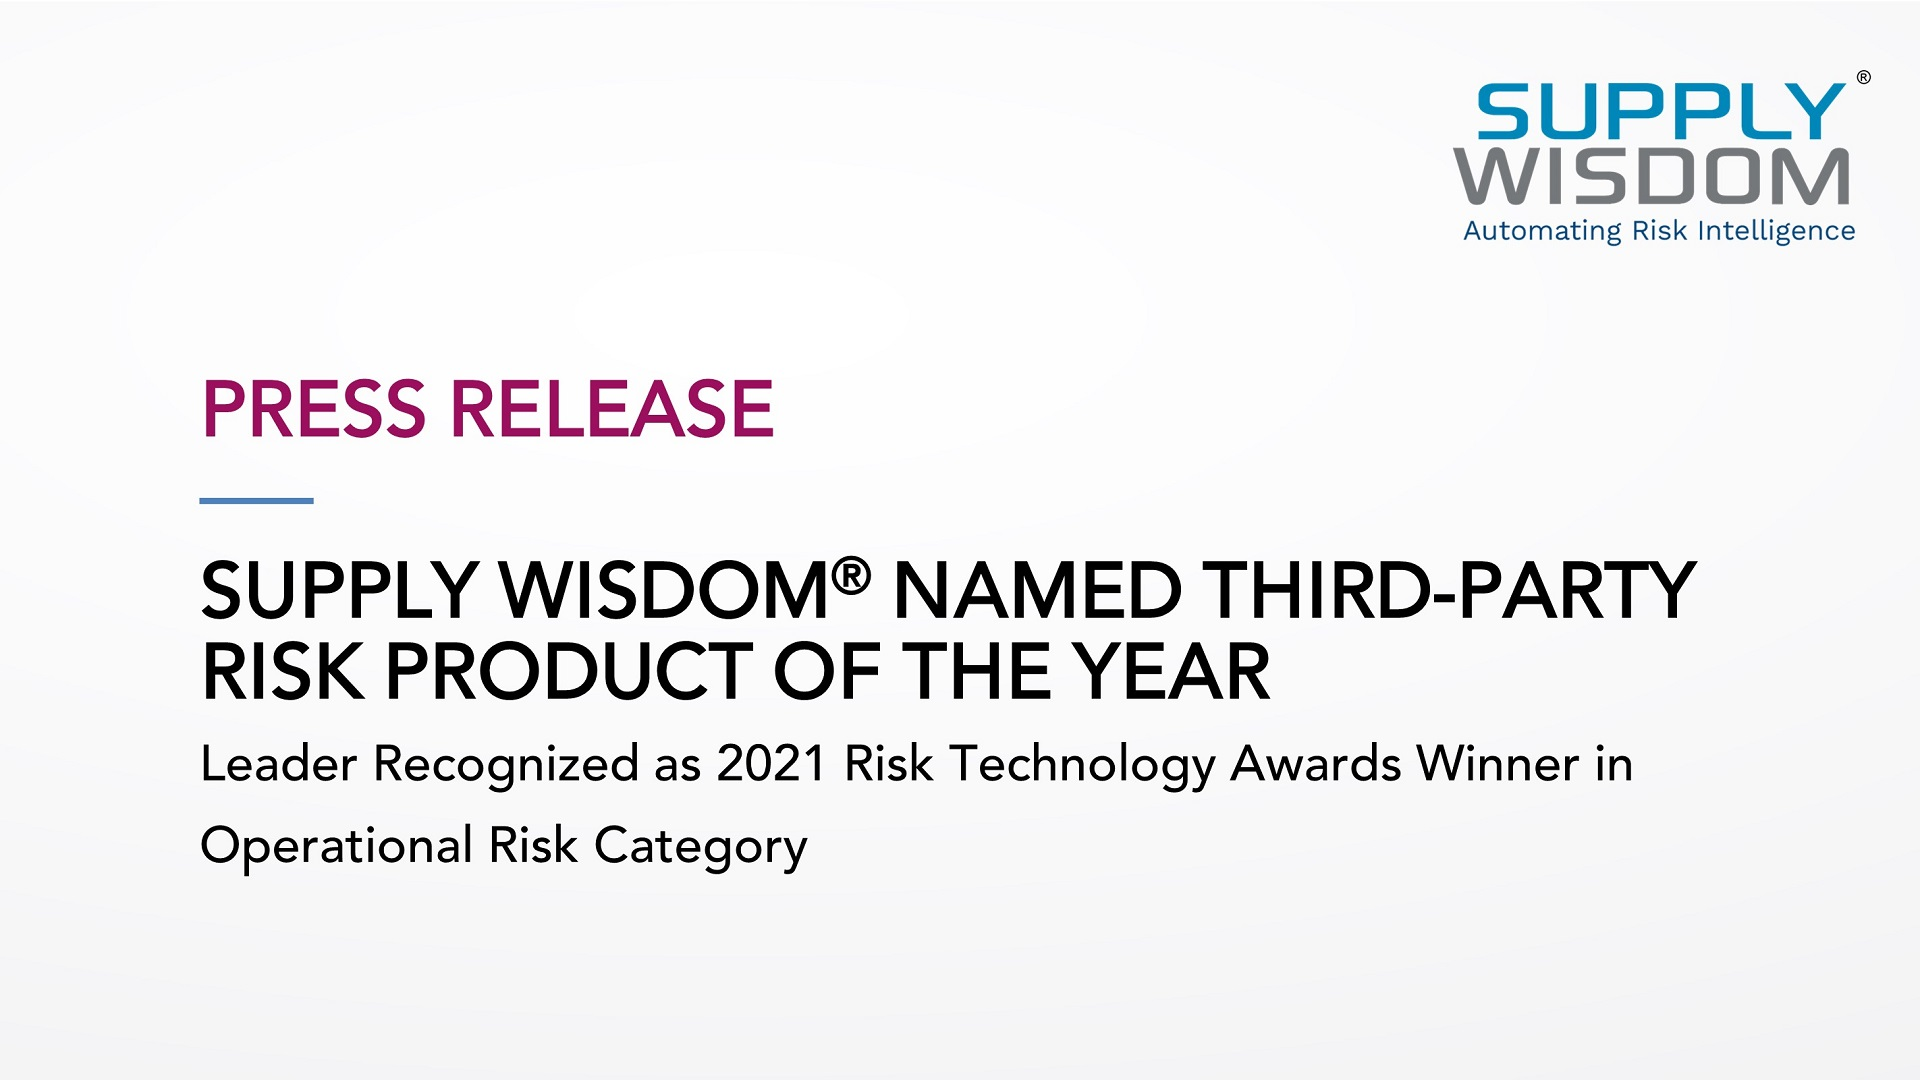 Supply Wisdom is Third Party Risk Product of the Year 2021